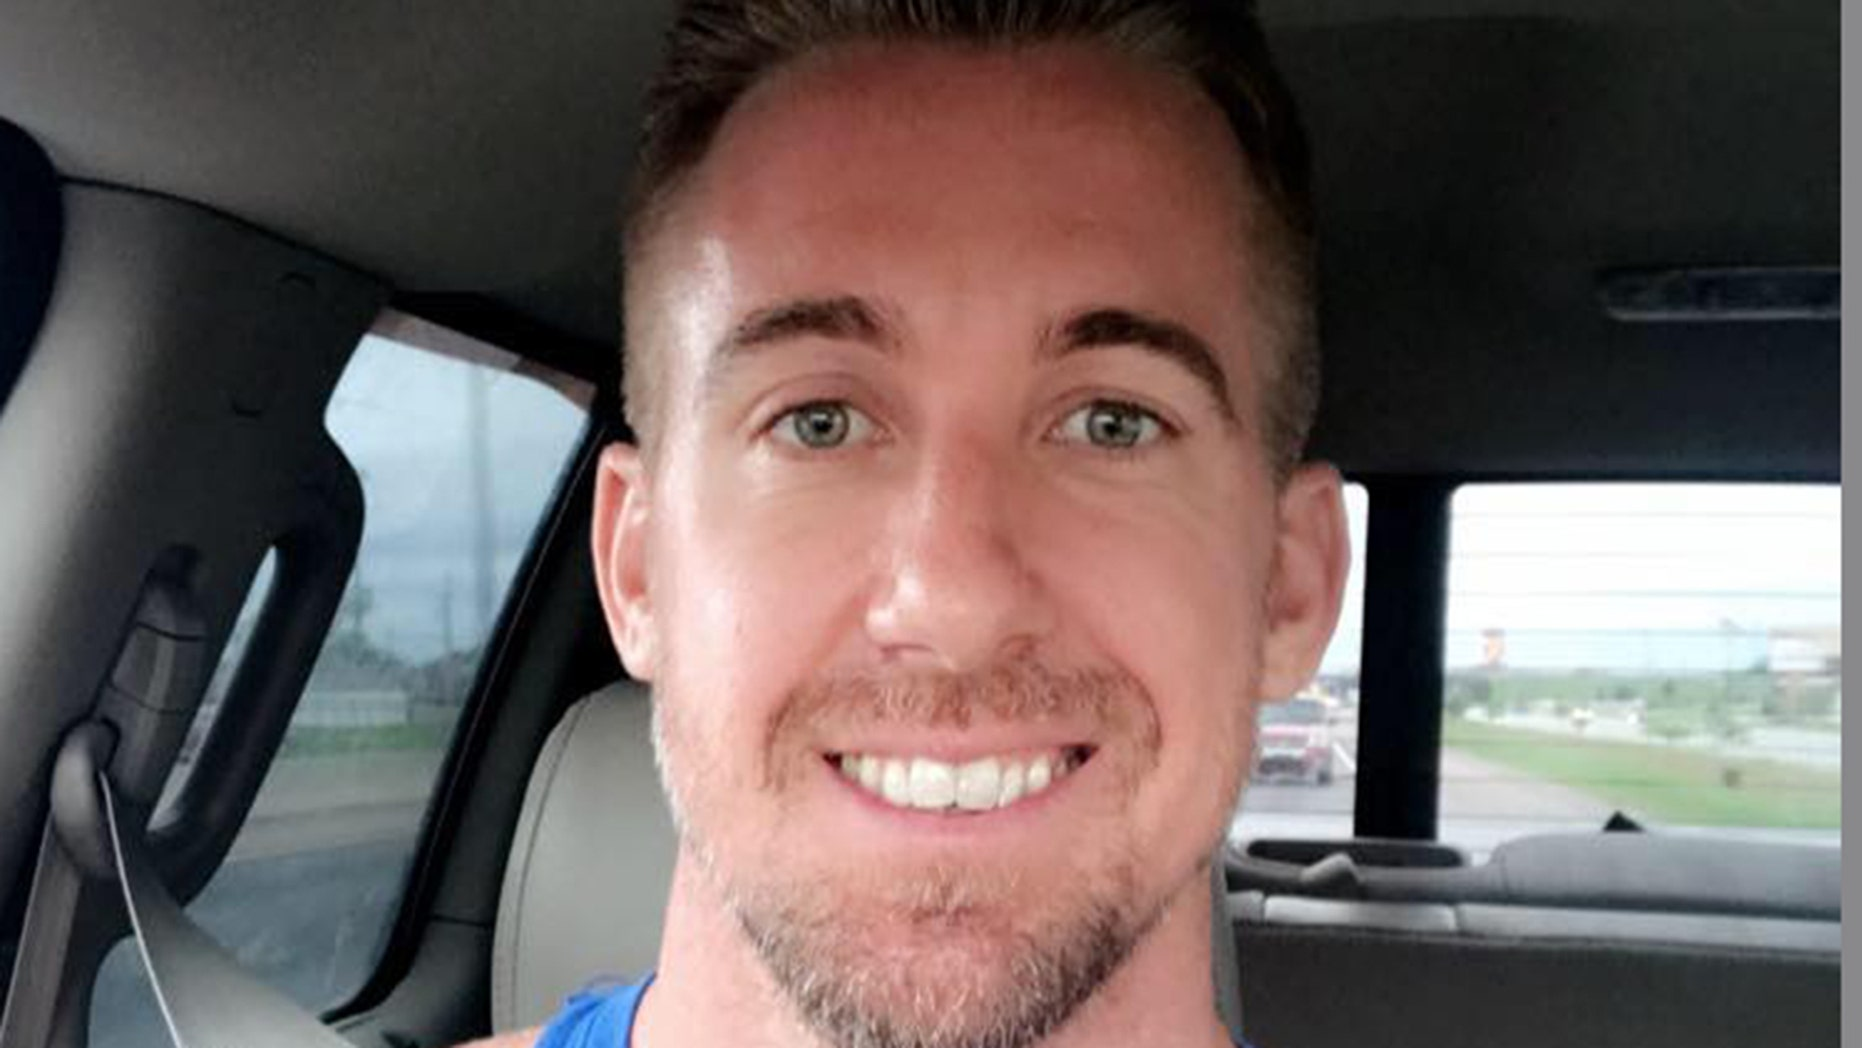 Joel Taylor's family identified his body after he was found dead on a cruise ship.